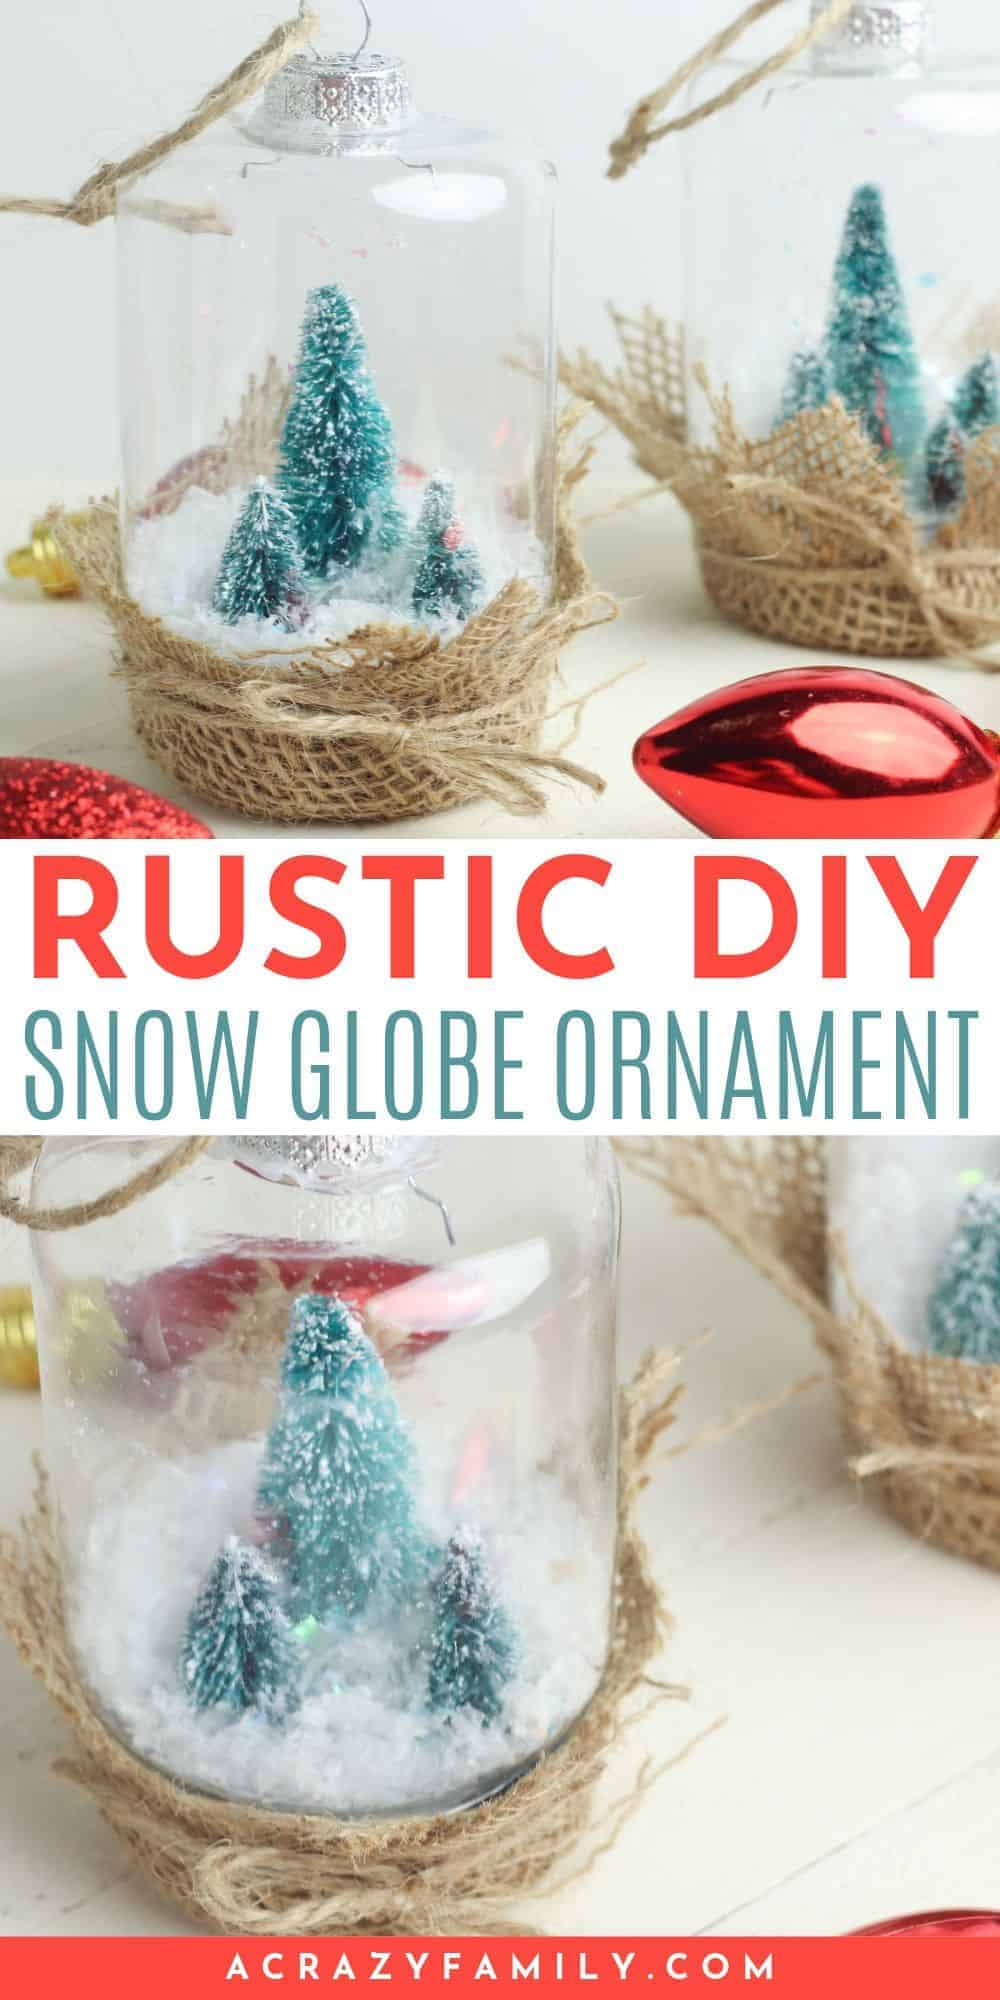 Rustic DIY Snow Globe Ornament